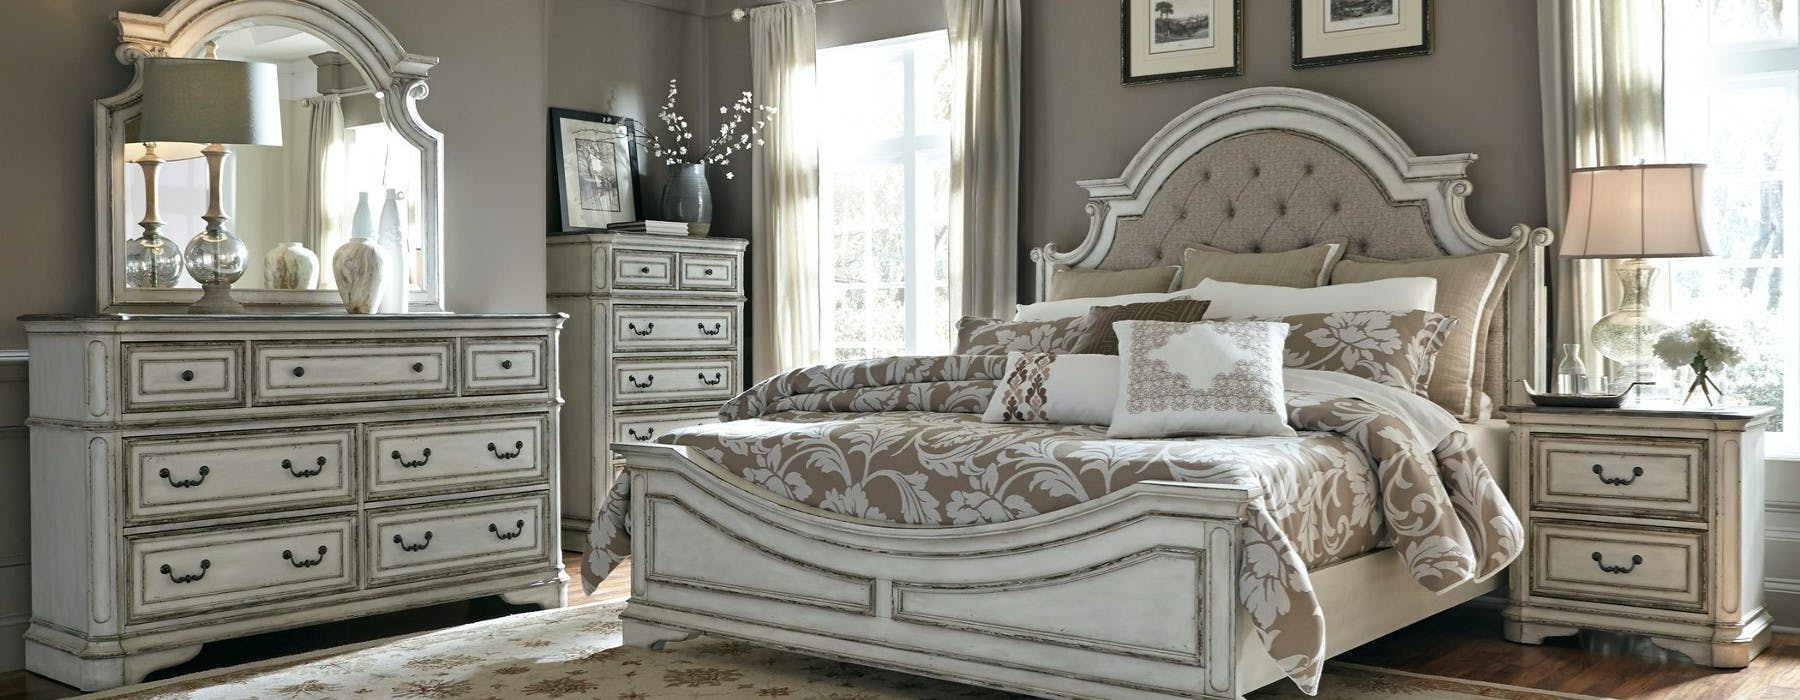 Fantastic Kemper Home Furnishings Furniture Store In London And Download Free Architecture Designs Scobabritishbridgeorg